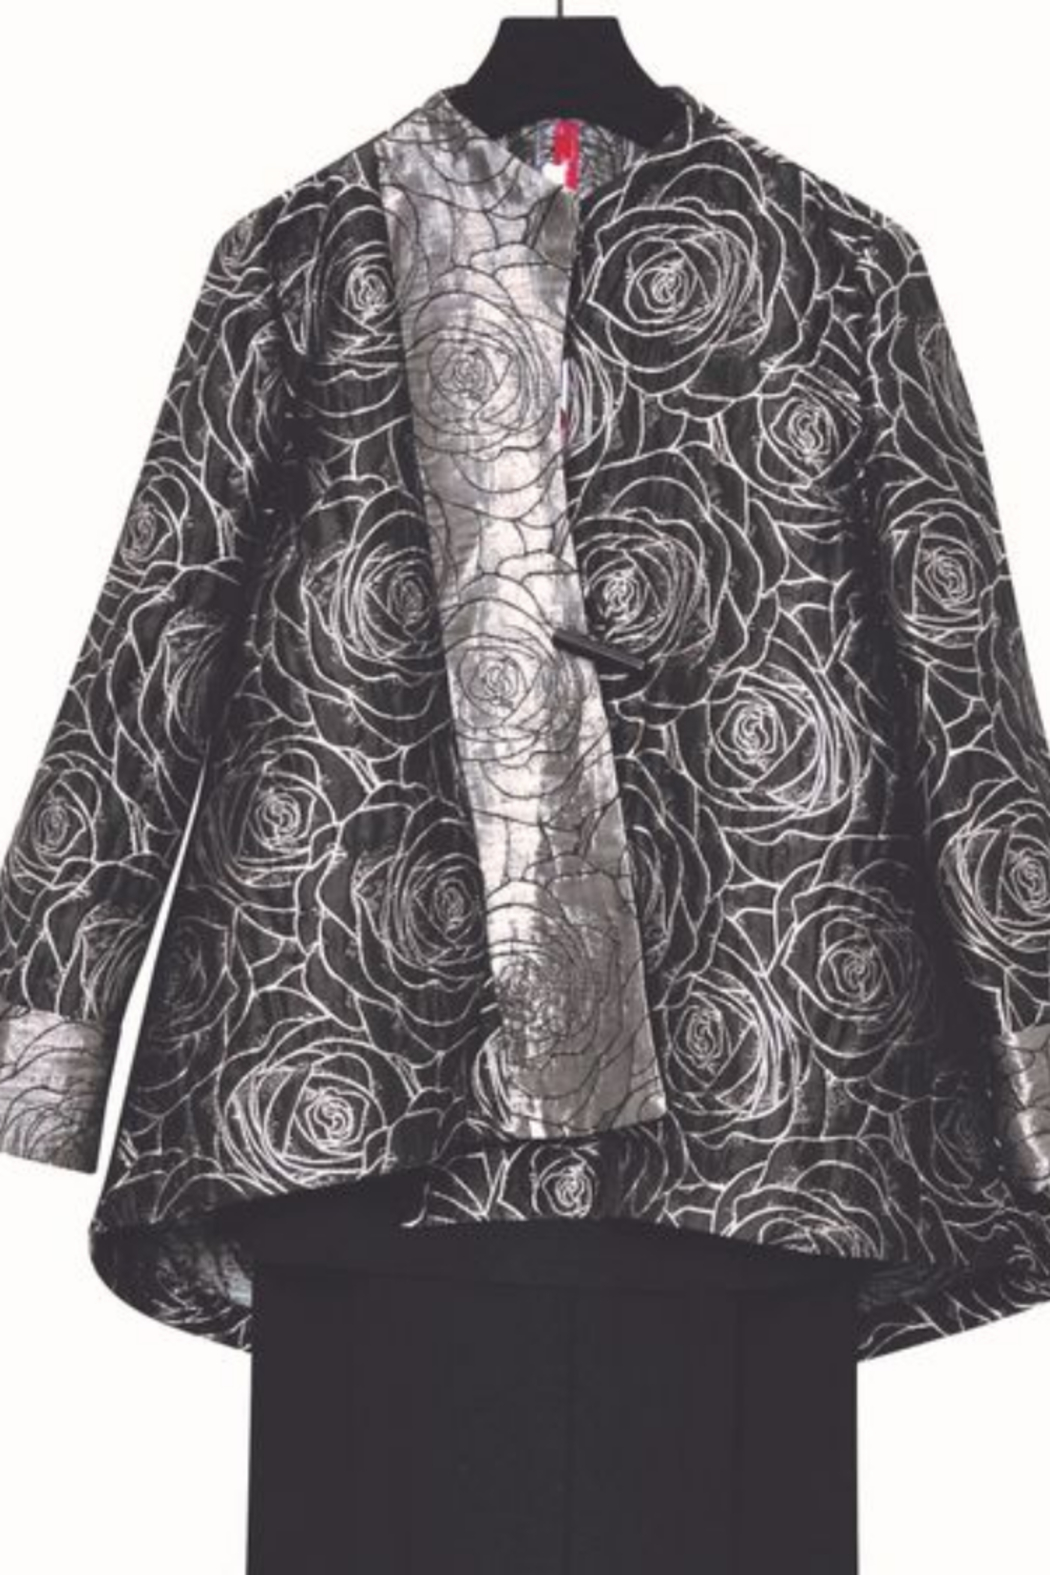 IC Collection Jacquard One Button Jacket -  3806J - Front Cropped Image